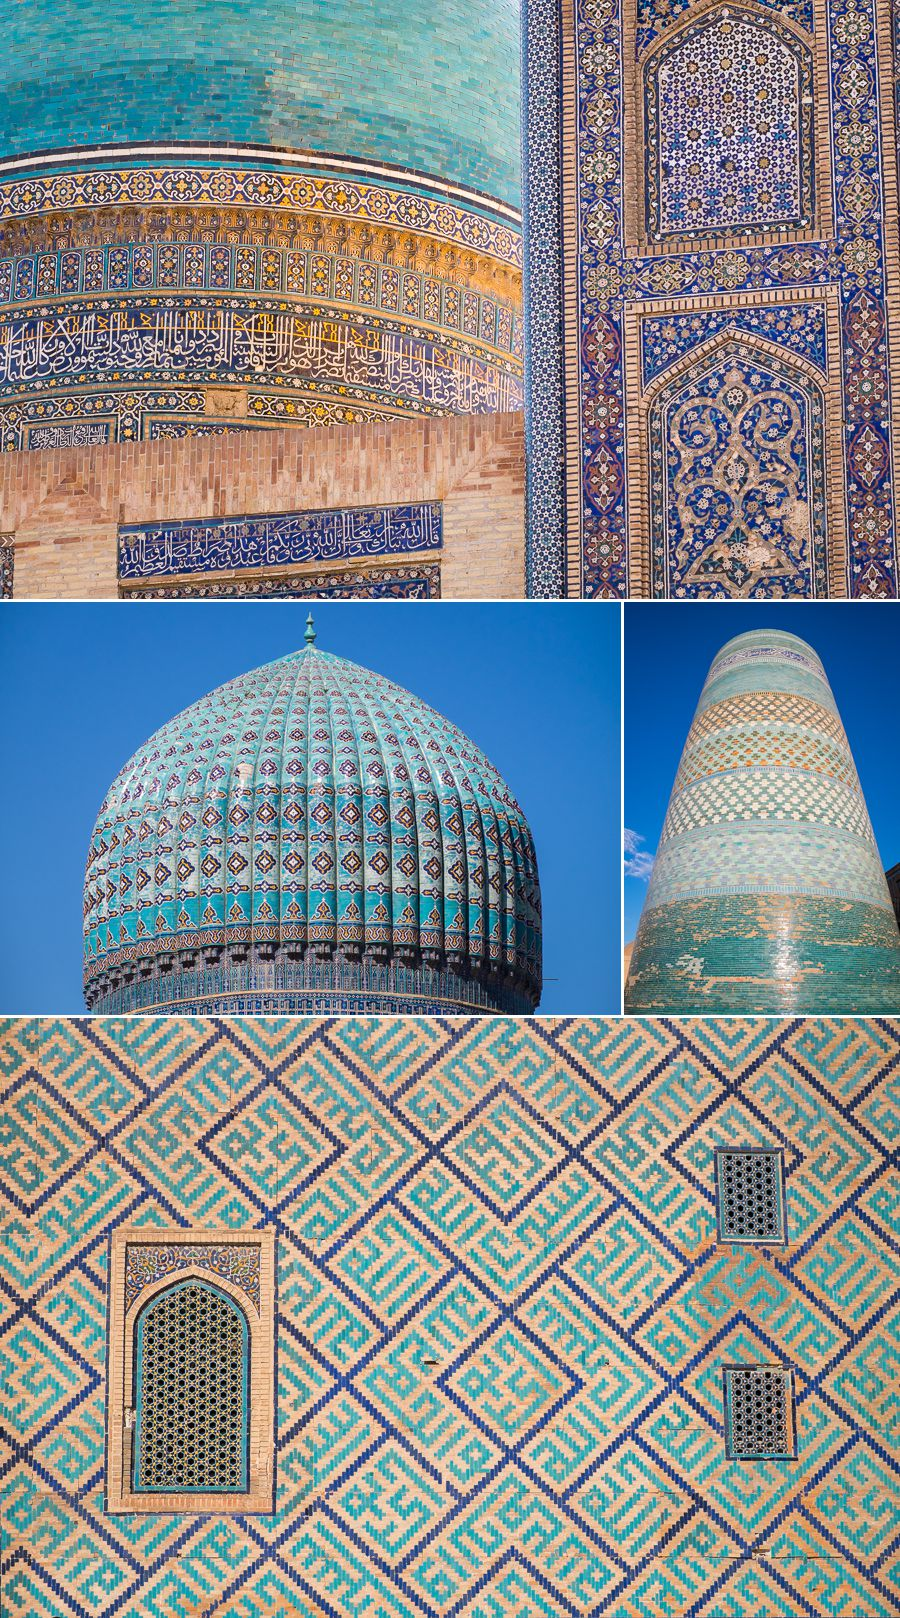 Land of blue and turquoise - Uzbekistan